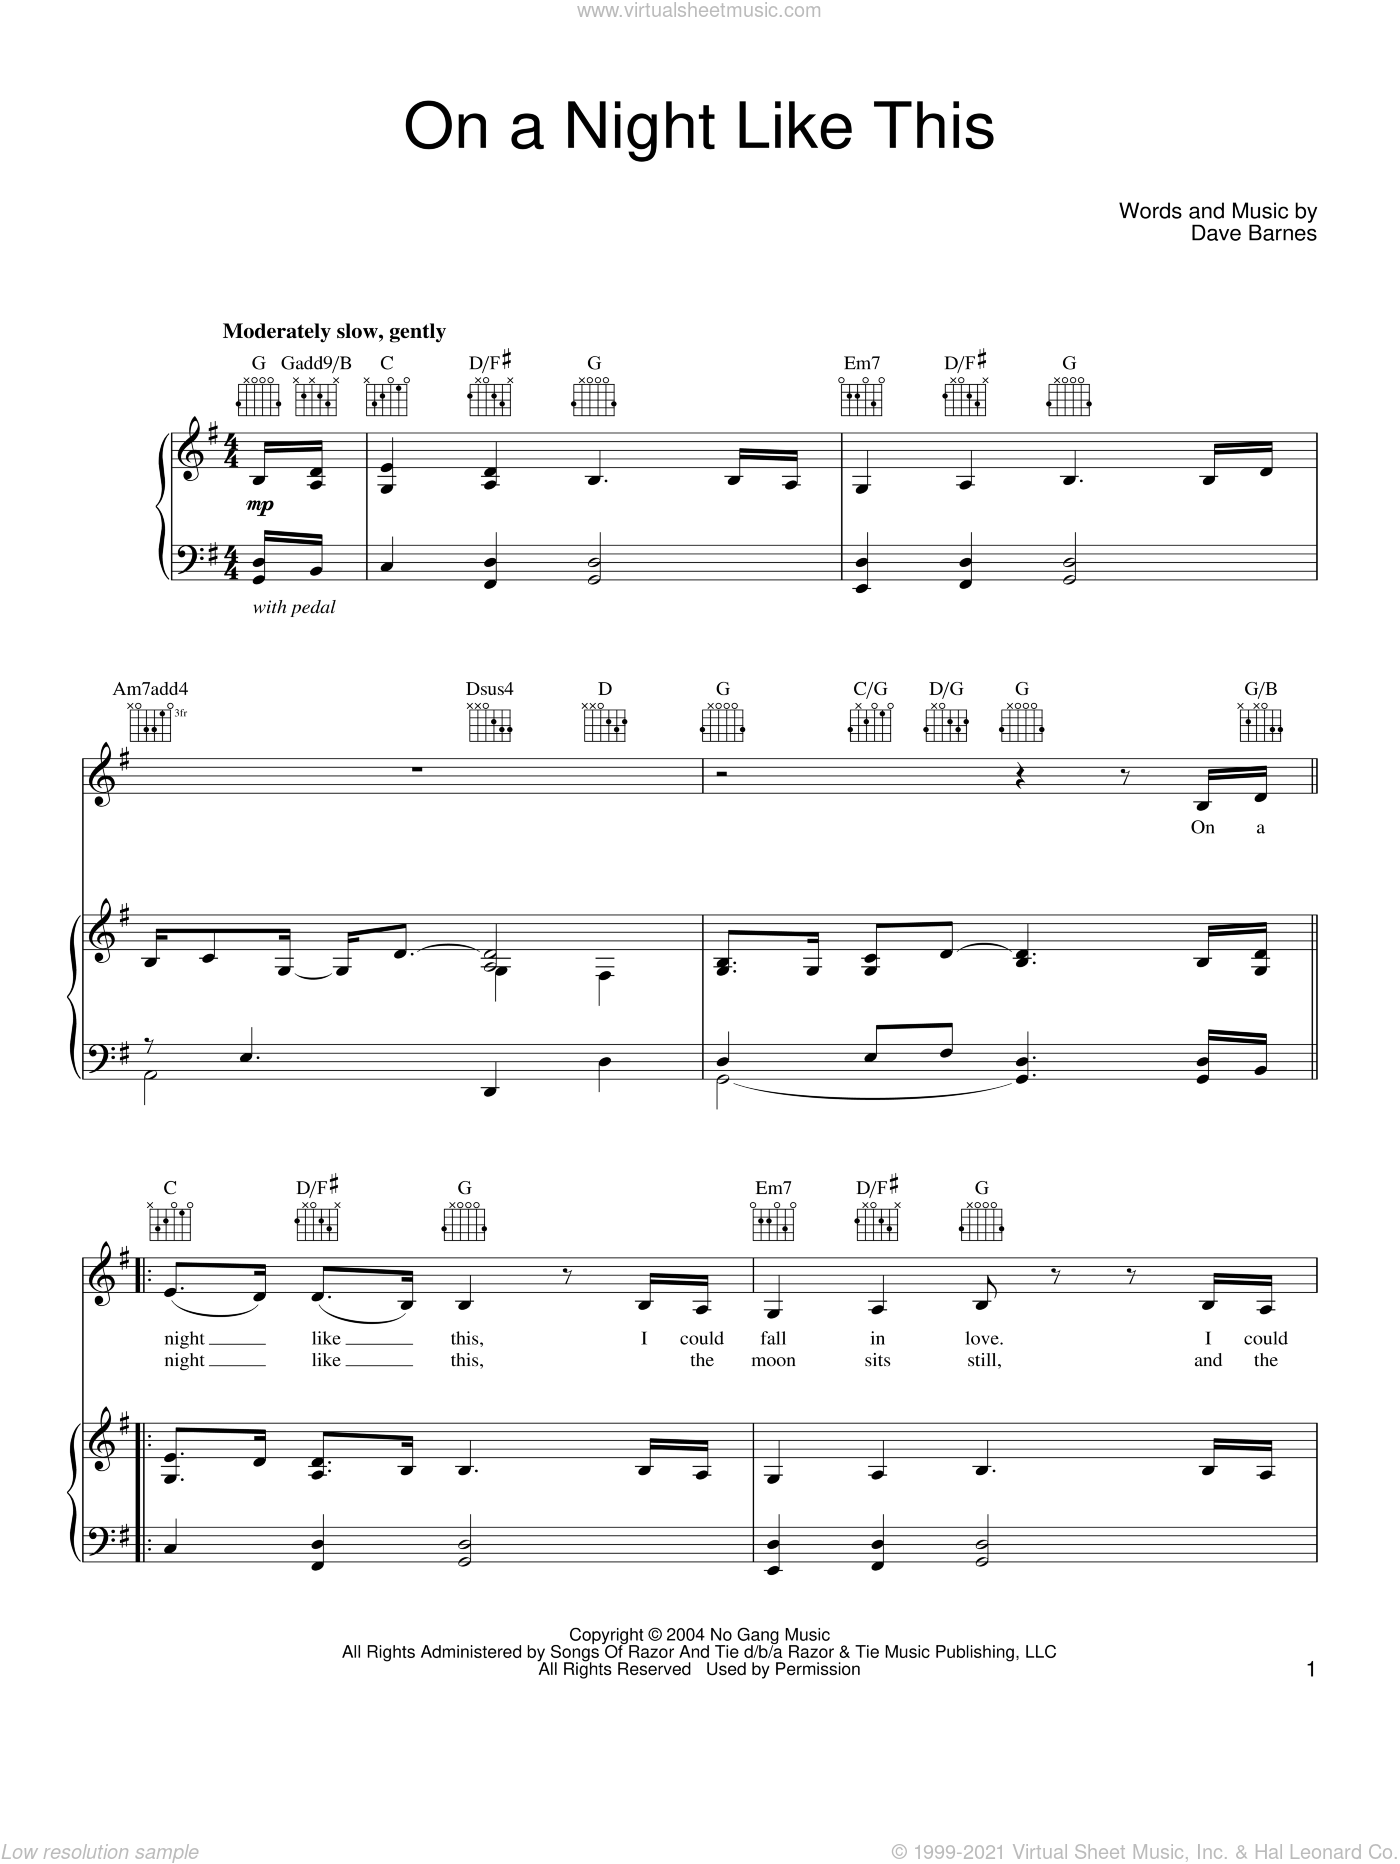 On A Night Like This sheet music for voice, piano or guitar by Dave Barnes, wedding score, intermediate skill level